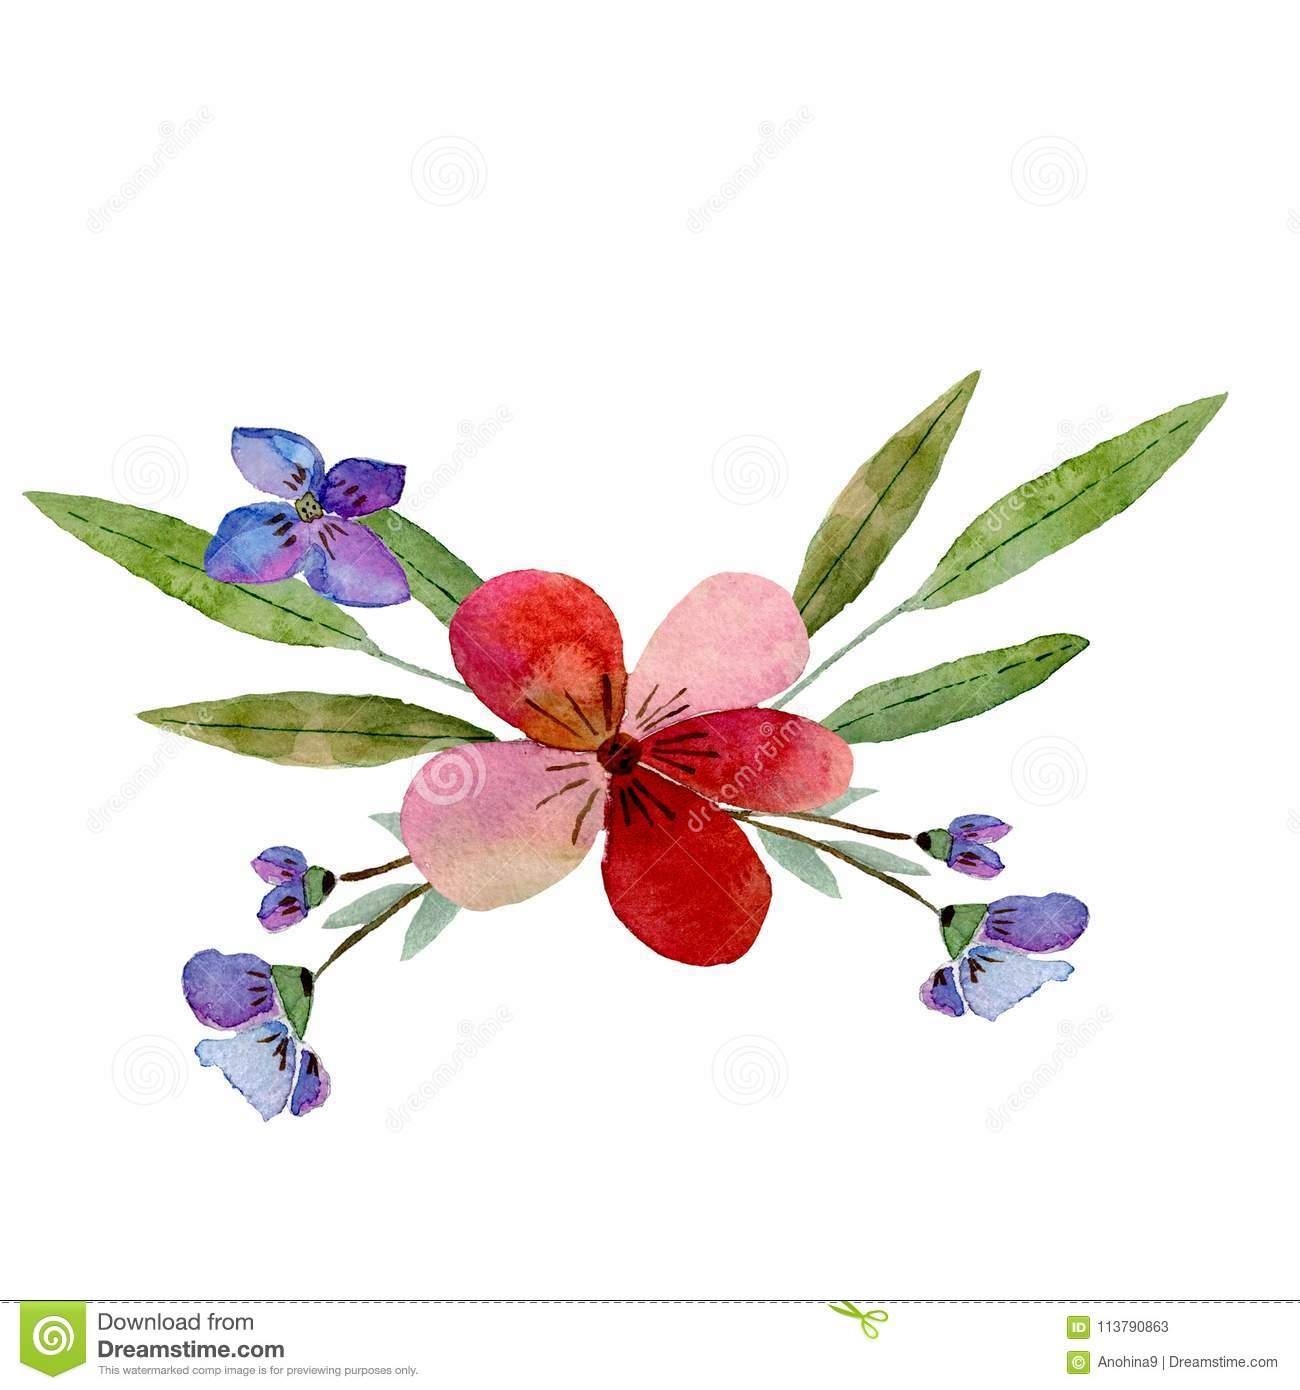 Watercolor Illustration Green Leaves And Red, And Blue Flowers Stock ...